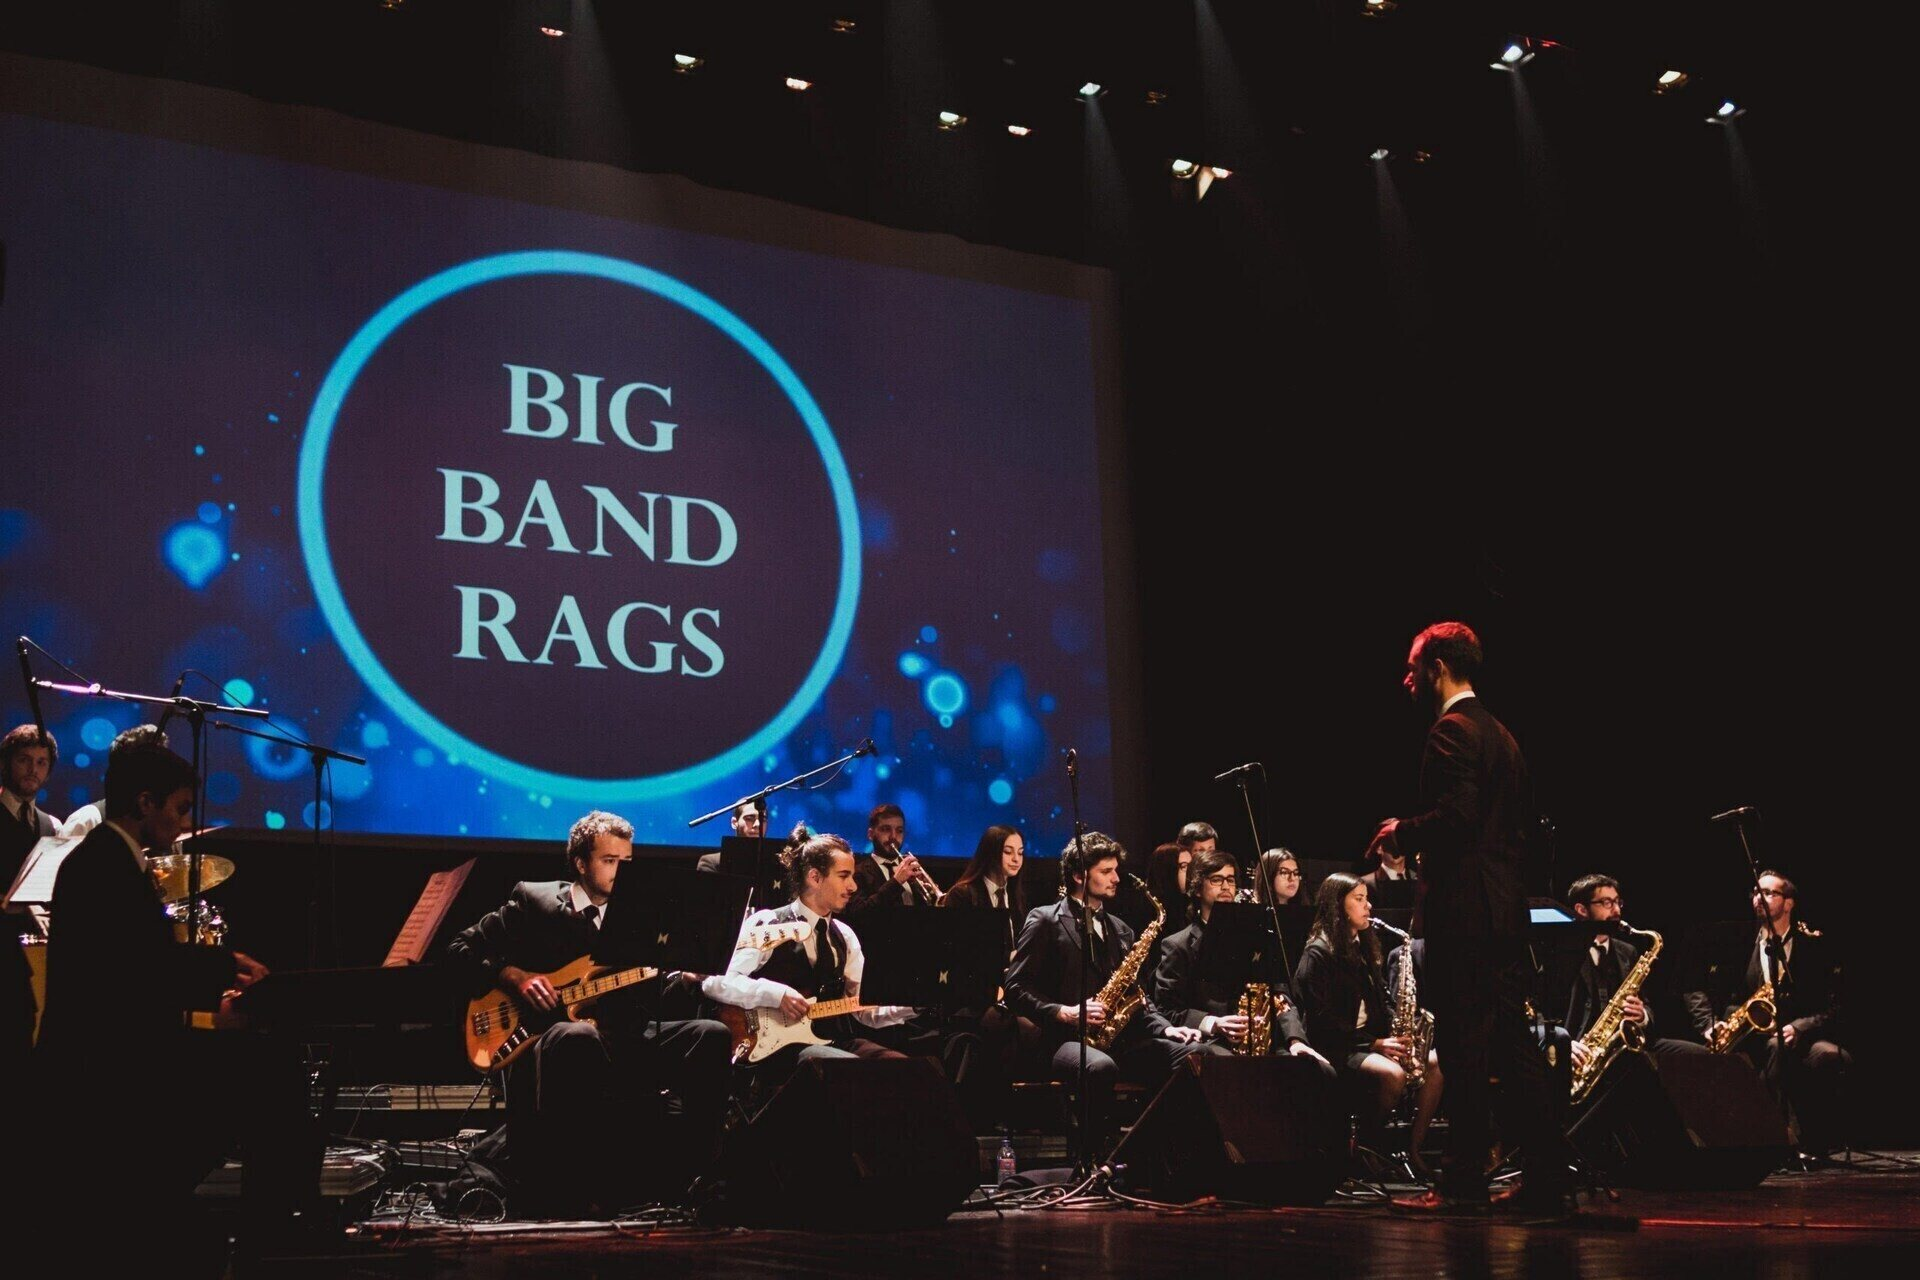 BigBandRags-scaled.jpg